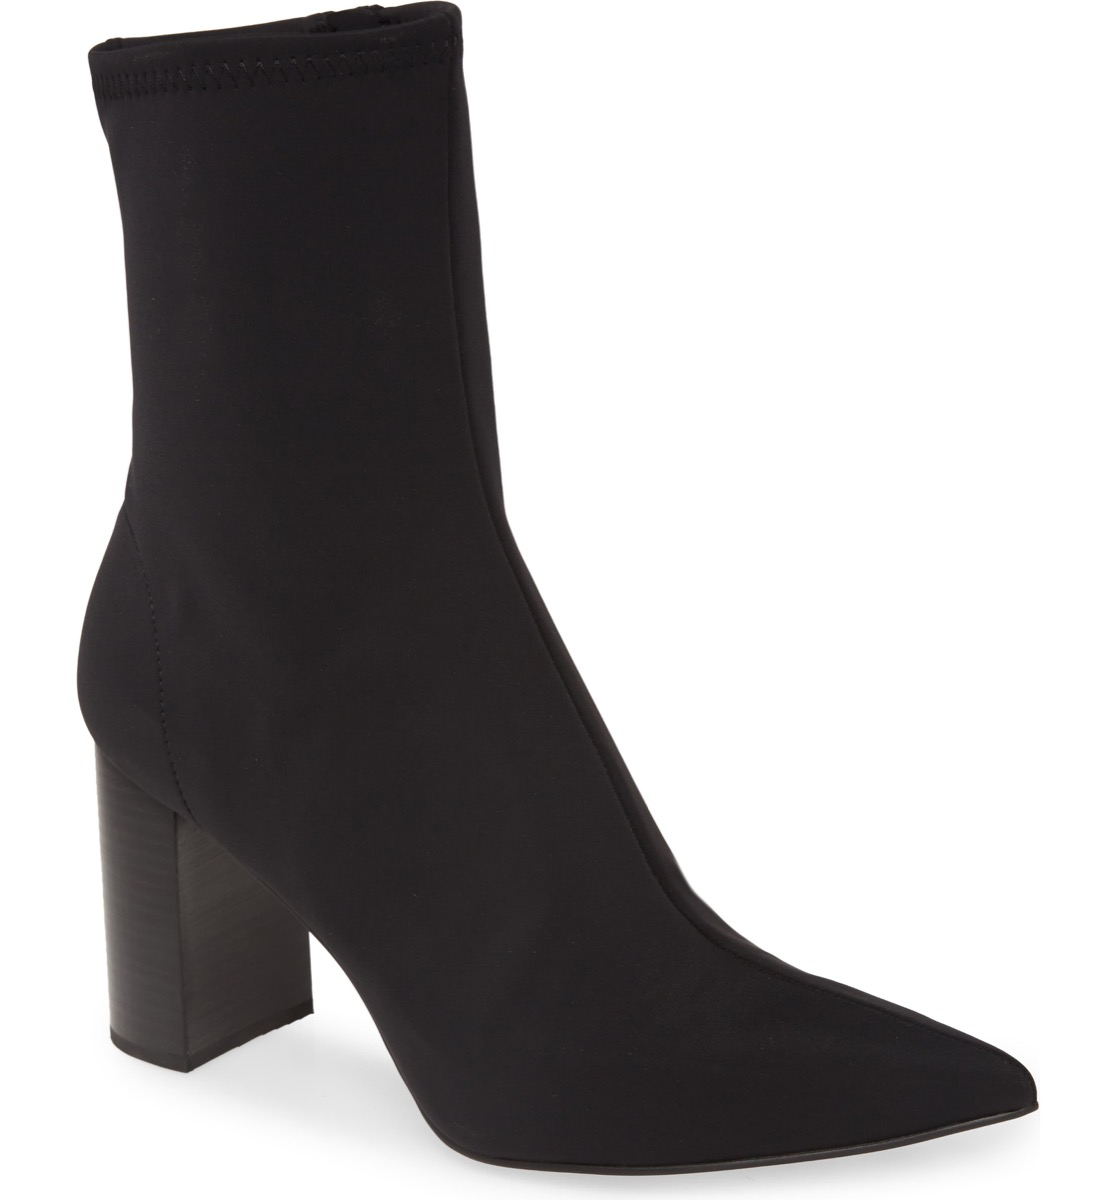 black neoprene ankle boots with pointed toe